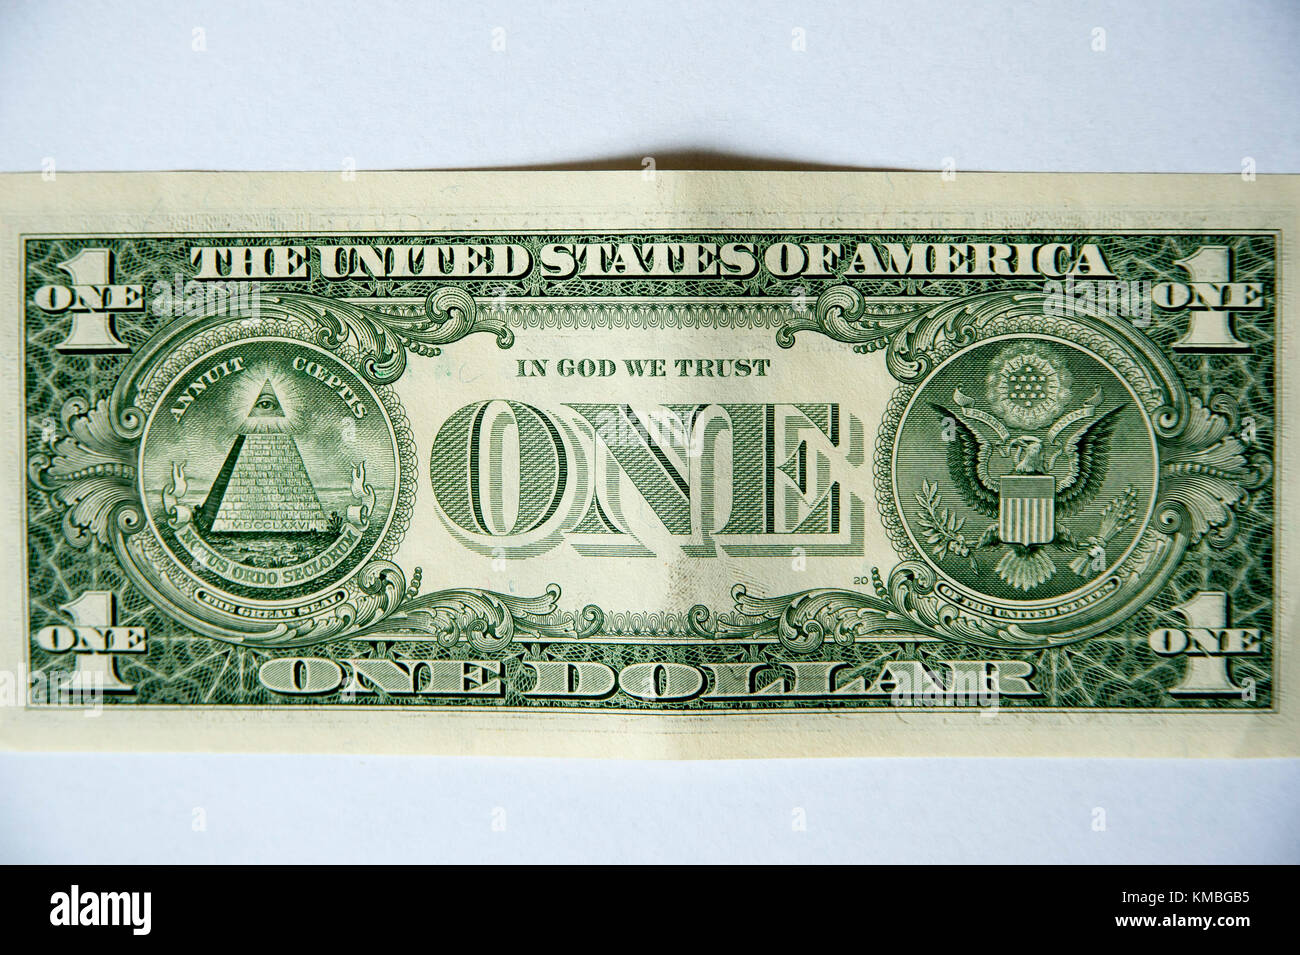 The United States one-dollar bill ($1) reverse with Great Seal of the United States © Wojciech Strozyk / Alamy - Stock Image